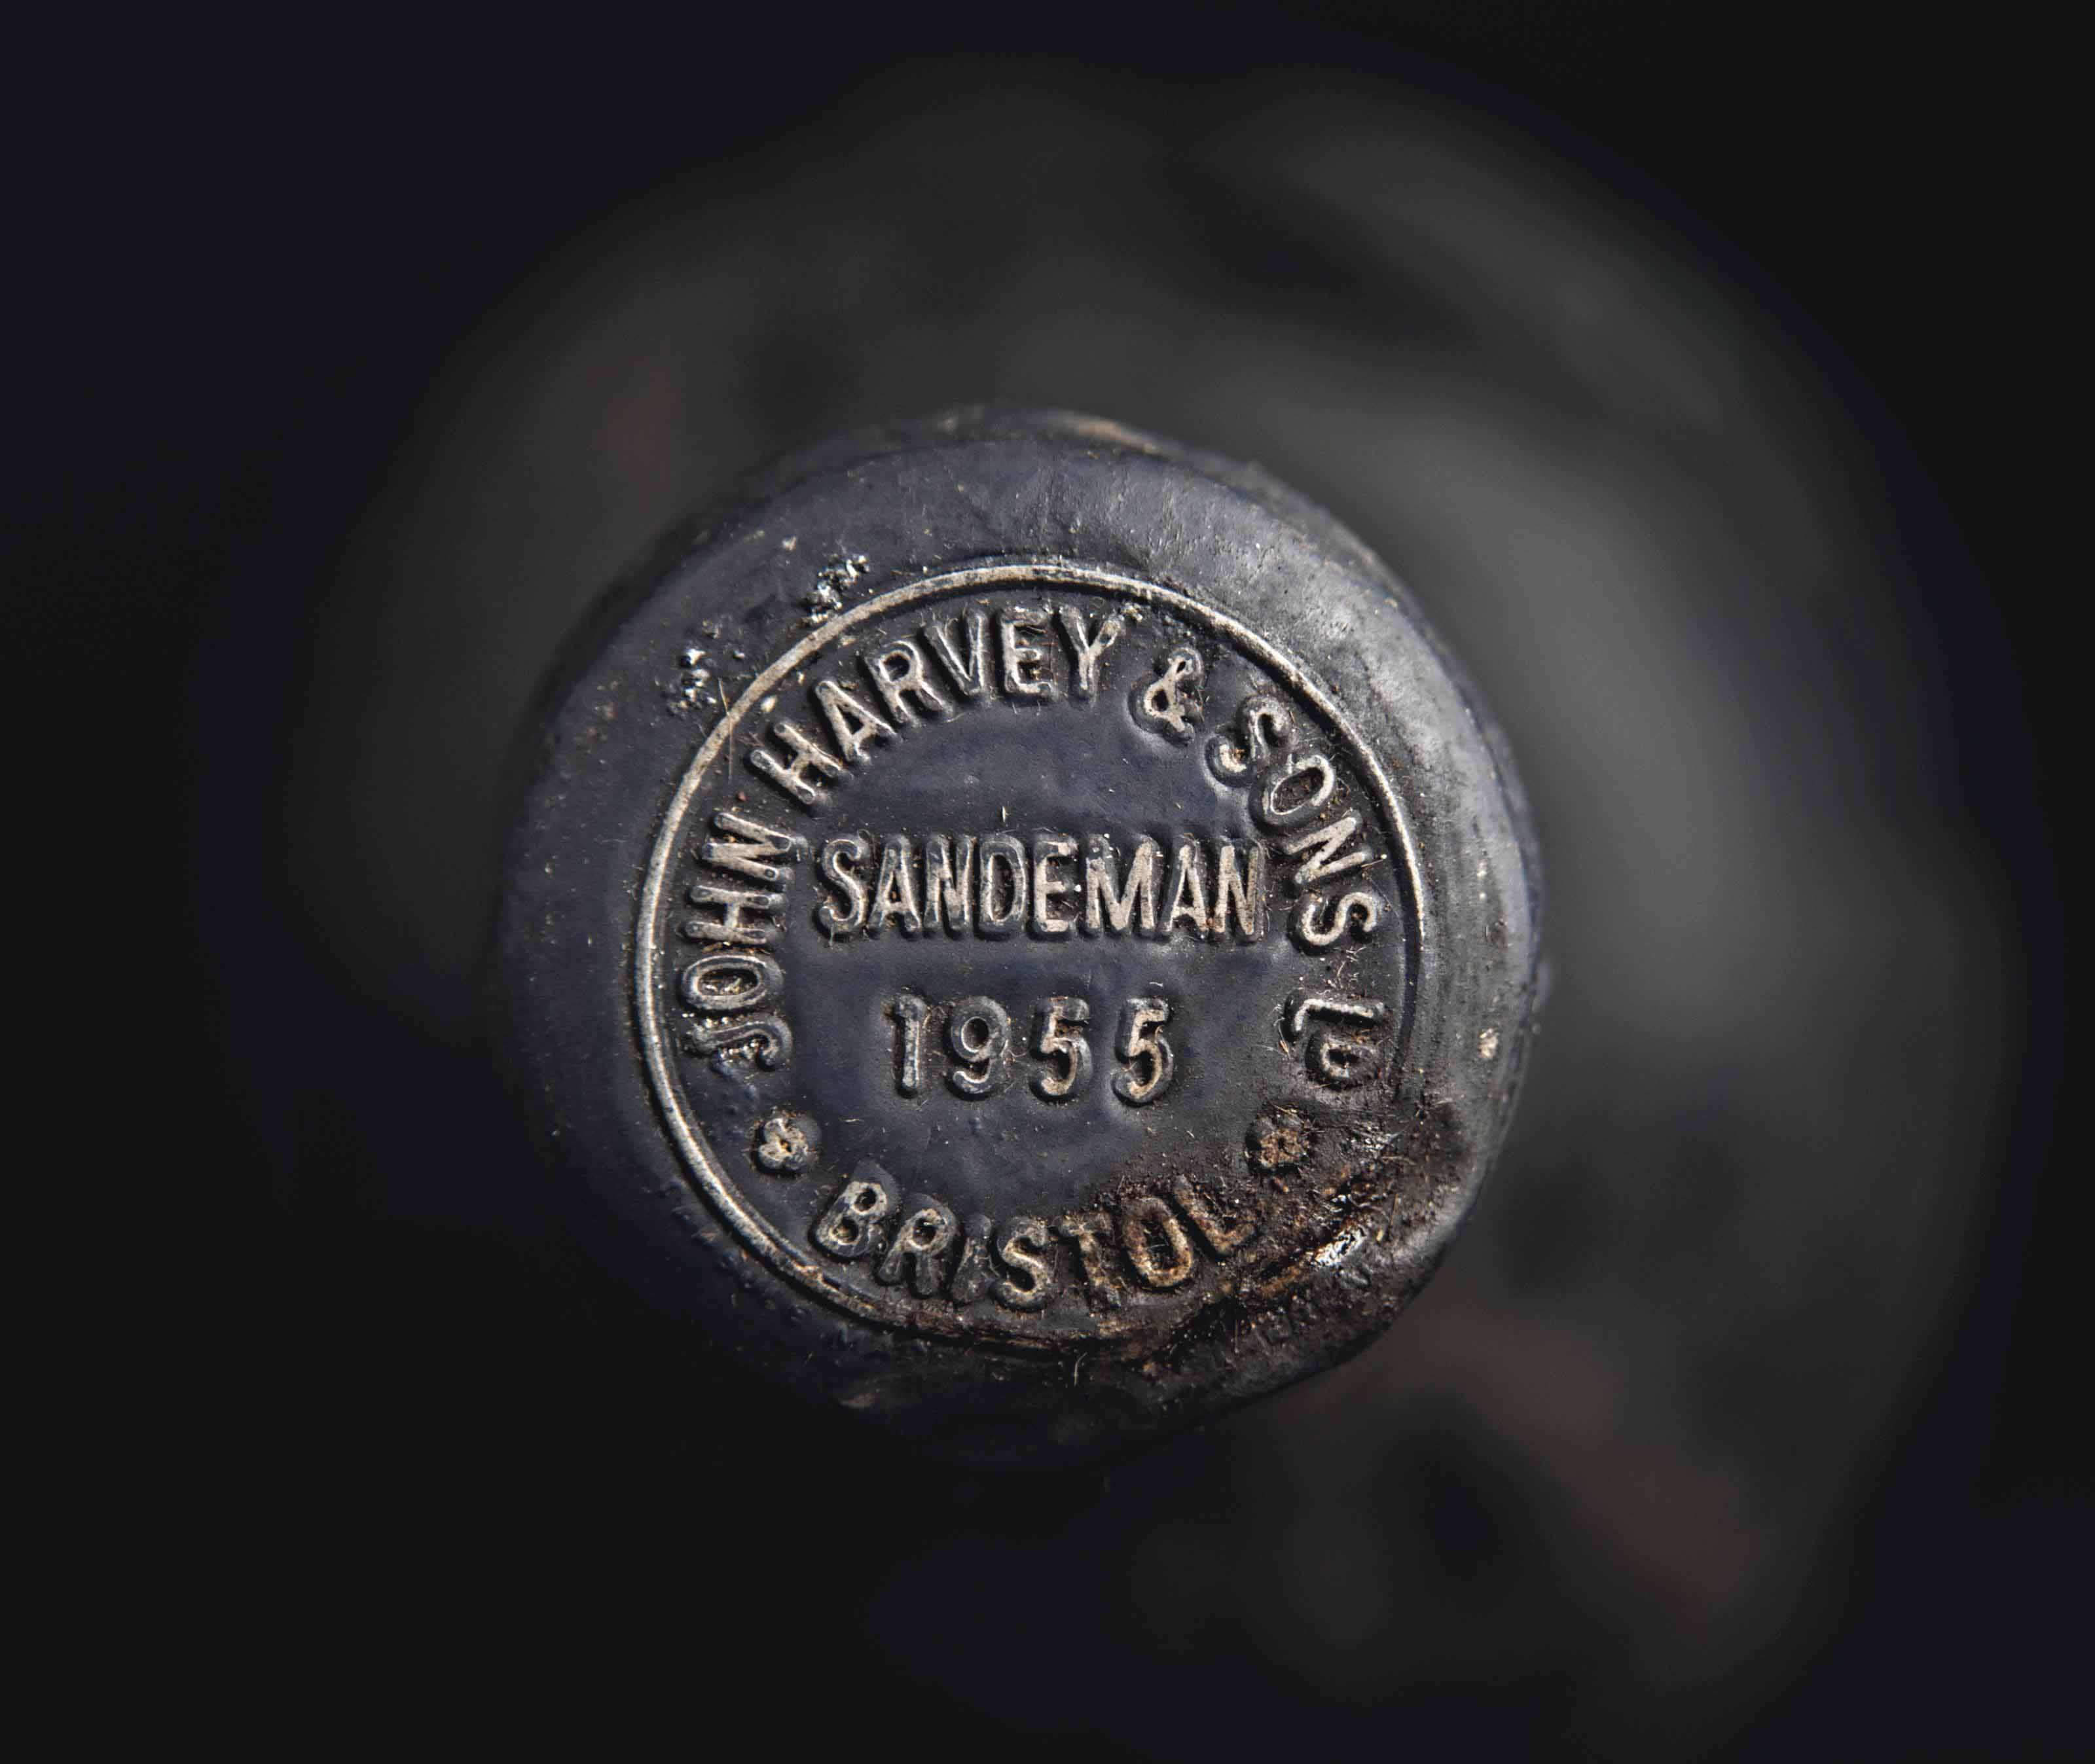 Sandeman 1950 Embossed wax capsules, one damaged. No labels. Levels base of neck  (3) 1955 Embossed metal capsule. No label. Level top-shoulder (1)